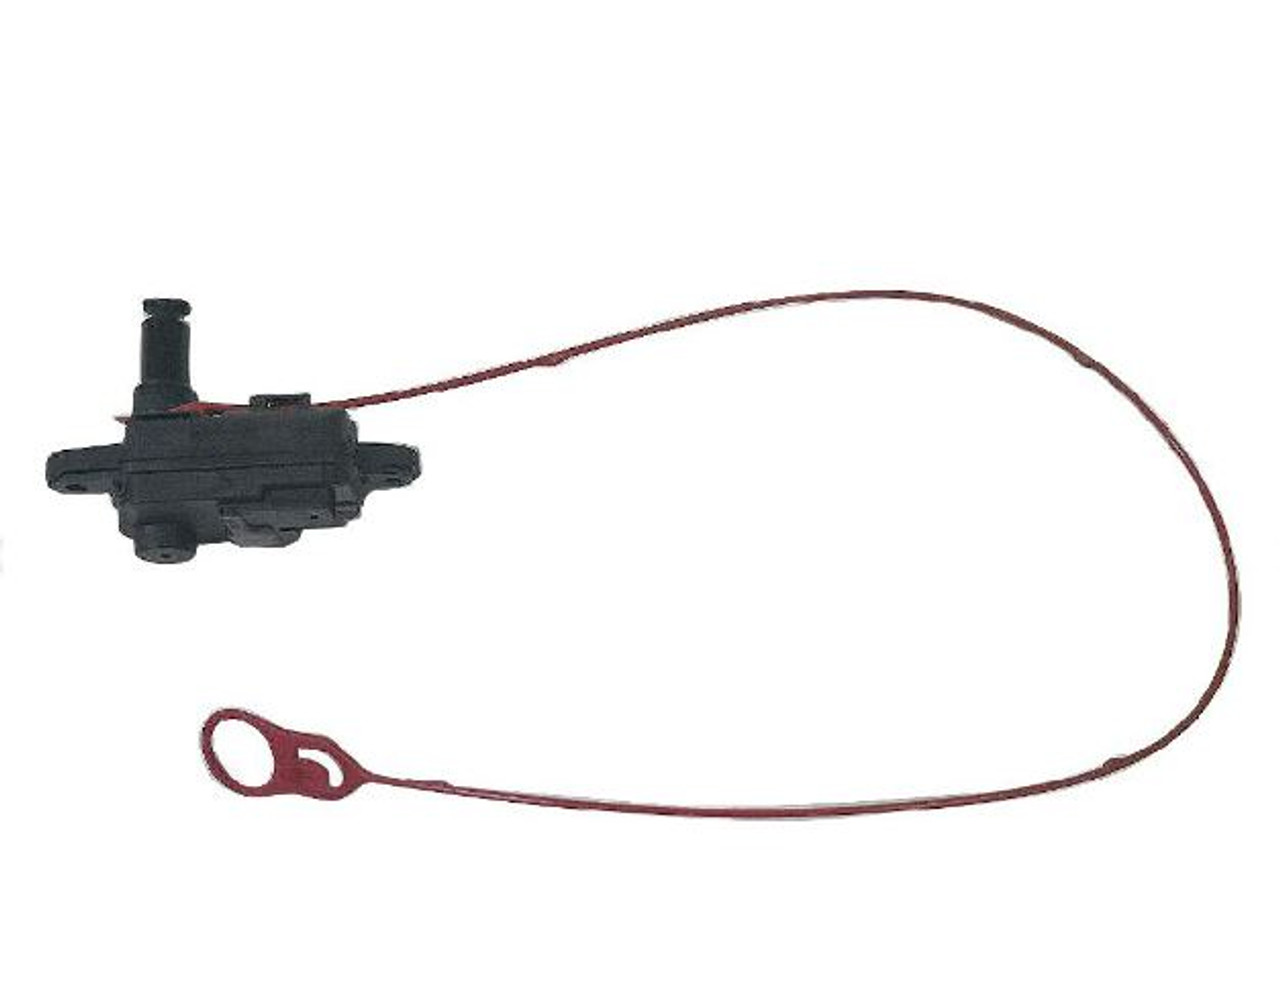 Genuine Audi A3 E-TRON 2013-2020 Fuel Flap Actuator 8V4862153B